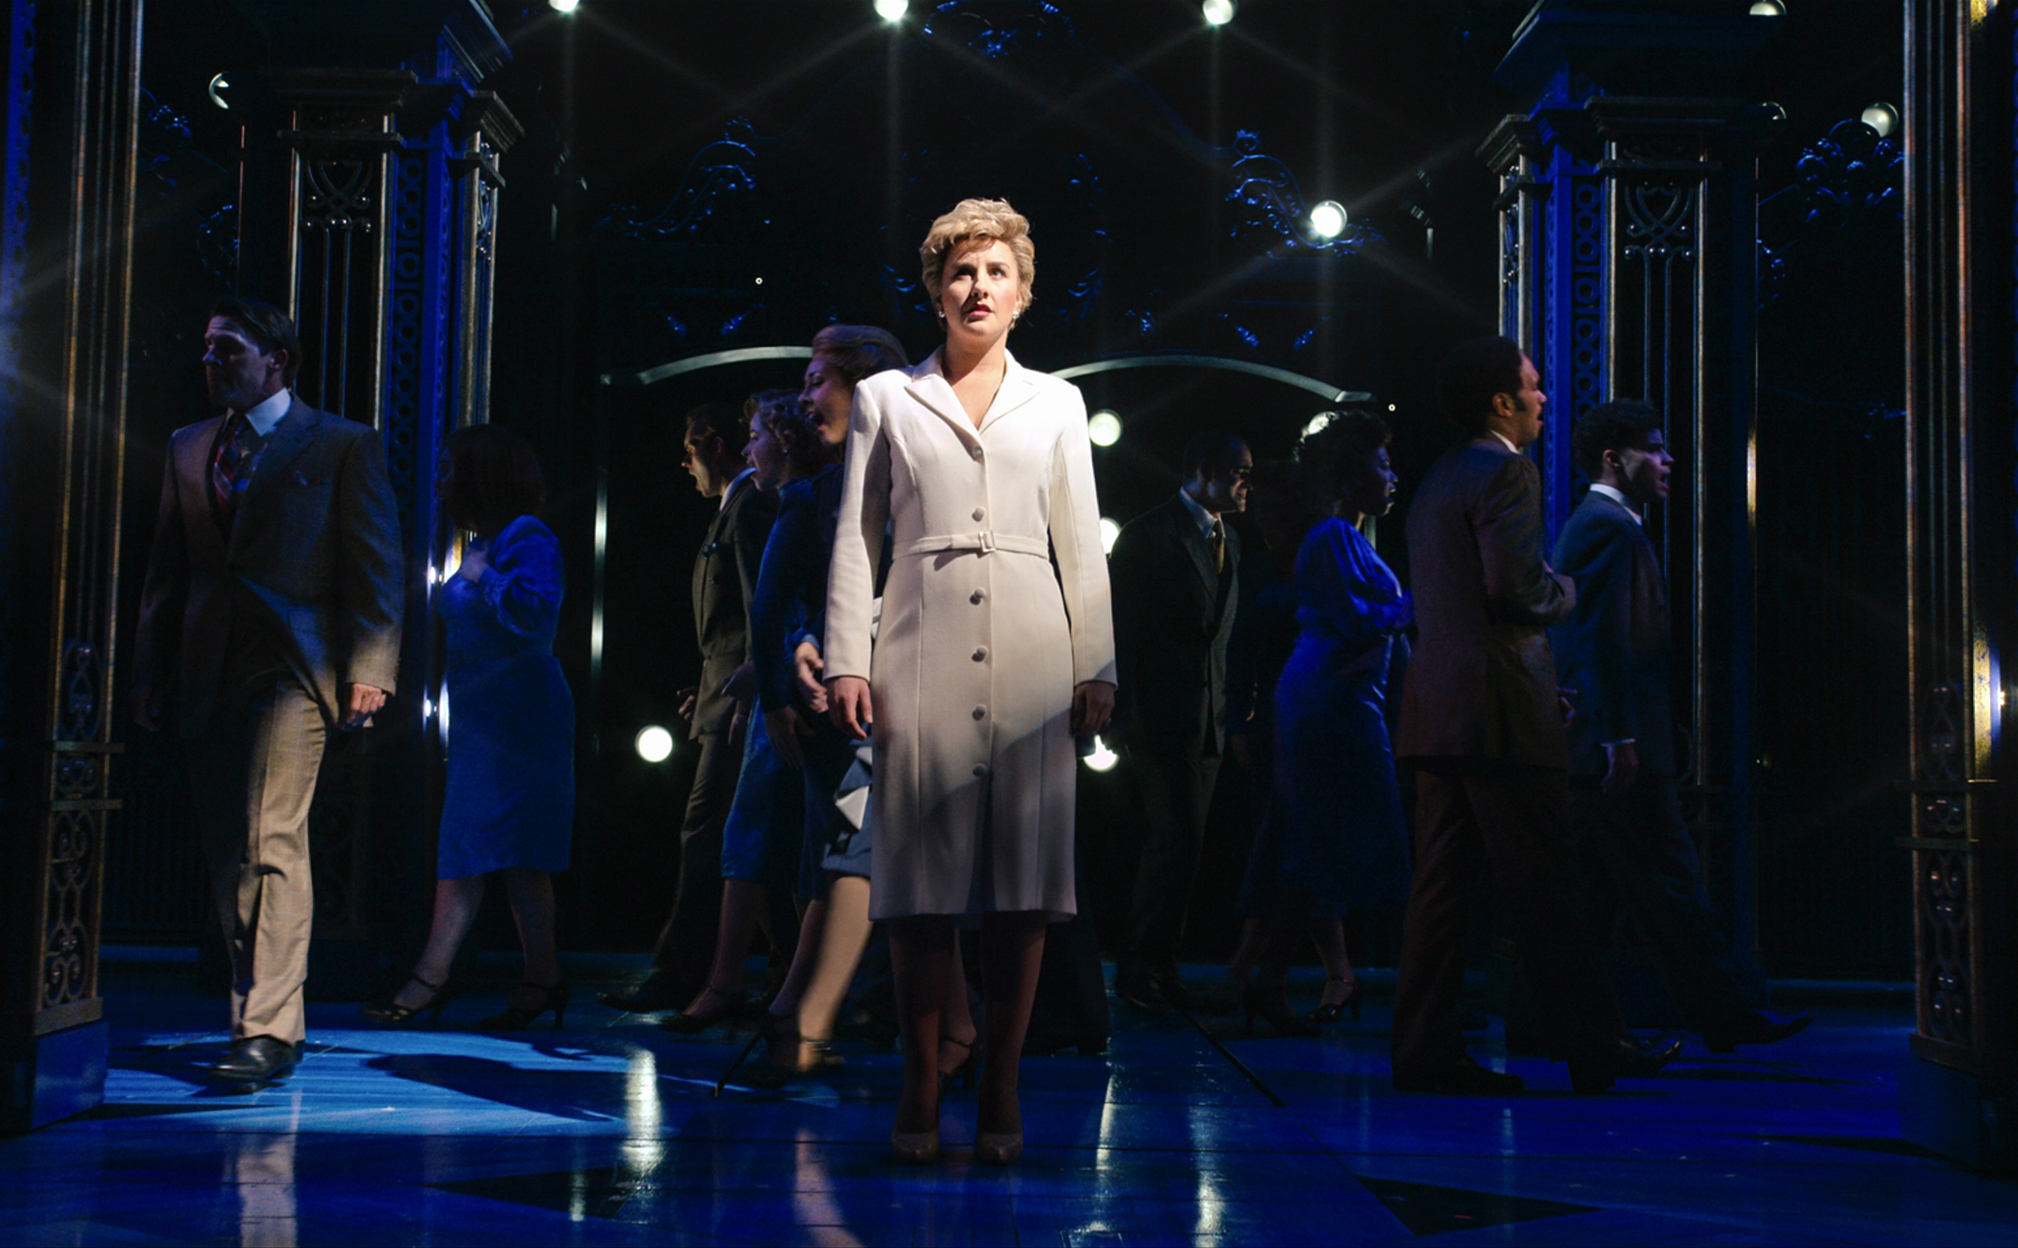 The potentially revolutionary gamble behind Netflix's schlocky new 'Diana' musical